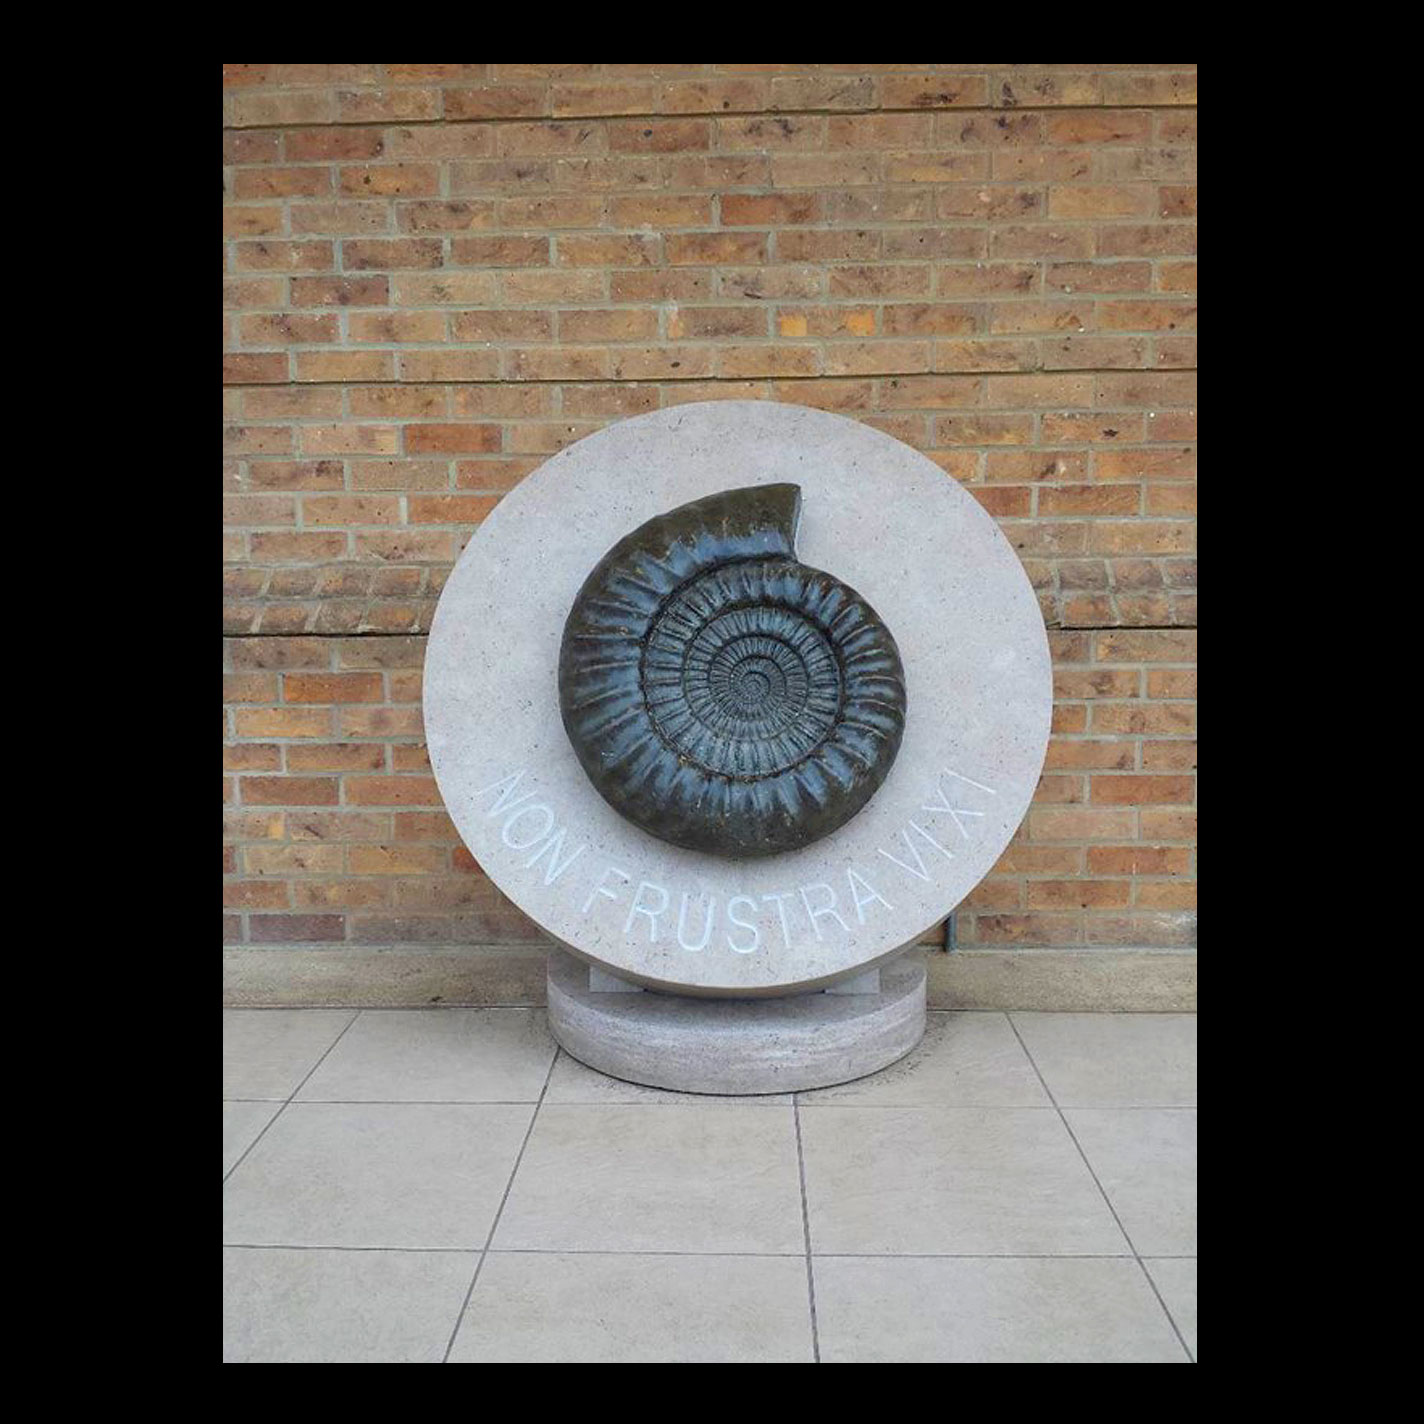 Display - St Hilda's College, Oxford - Large Ammonite Fossil (College Symbol) Displayed on 1.2m high Circular Stone Plinth - Design & Drawings.